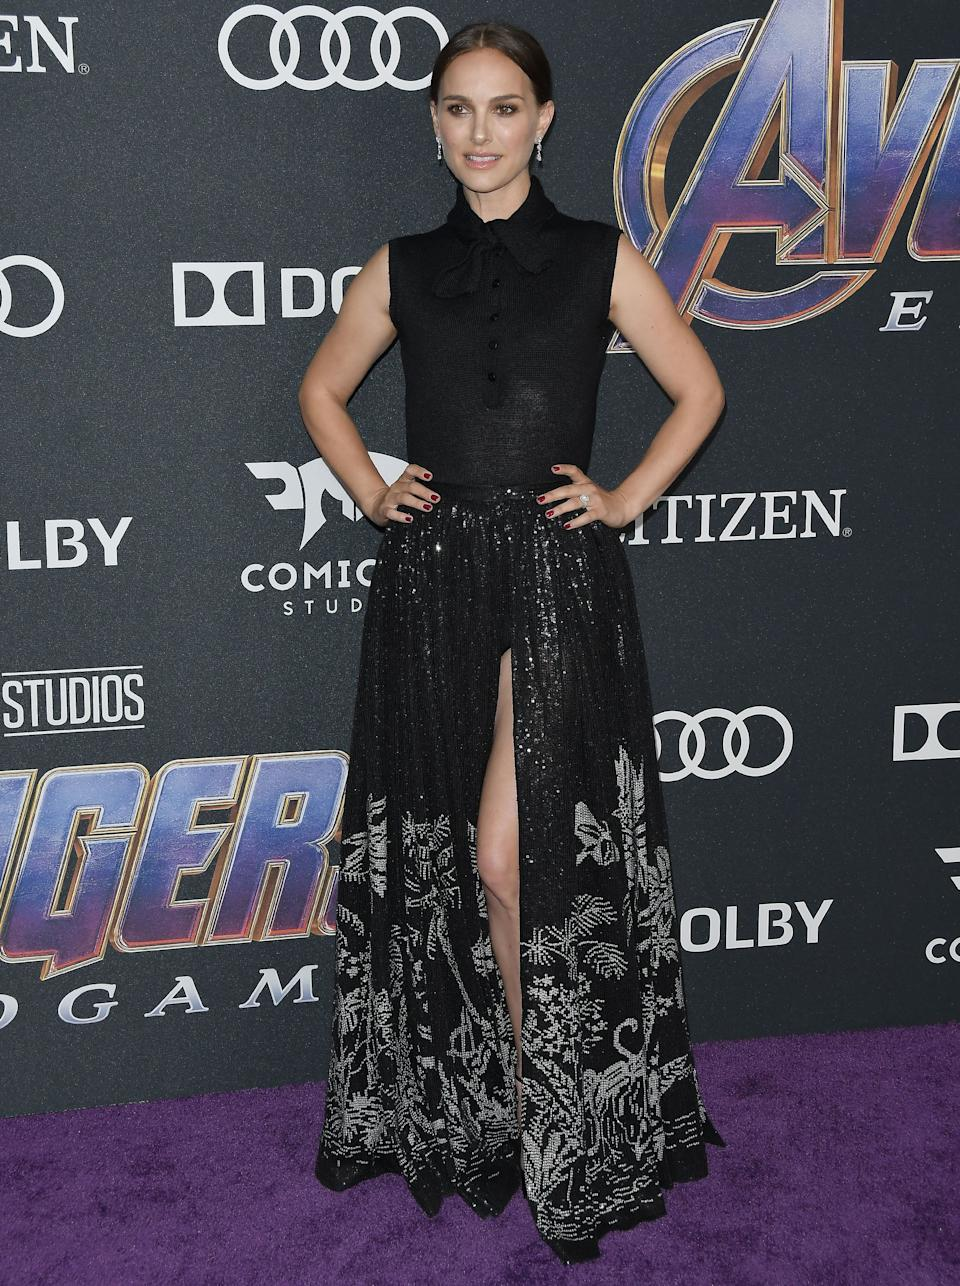 Former Marvel star Natalie Portman wore a full-skirted Dior look on the red carpet. [Photo: PA]